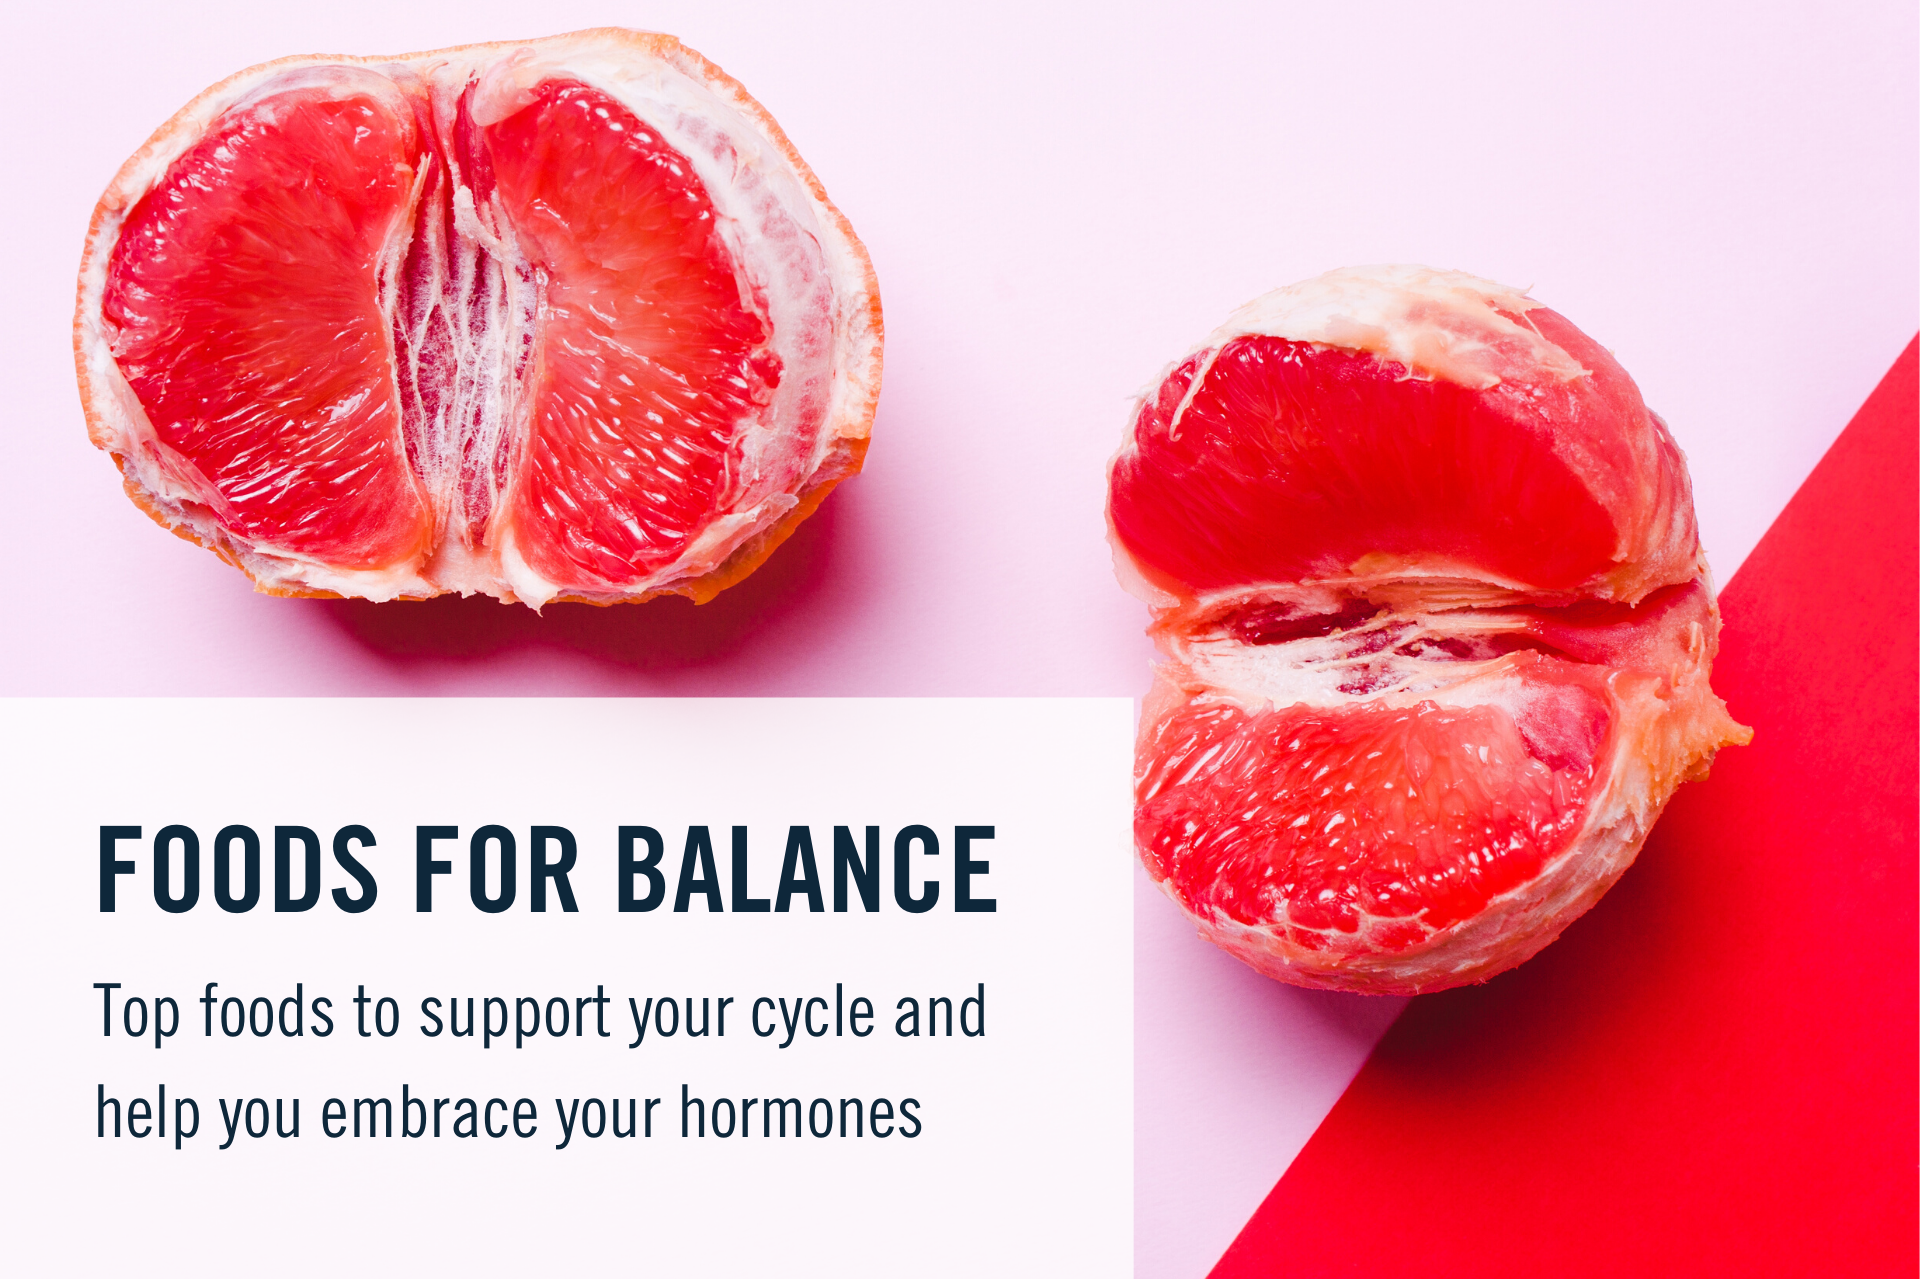 Top foods to support your cycle and help you embrace your hormones